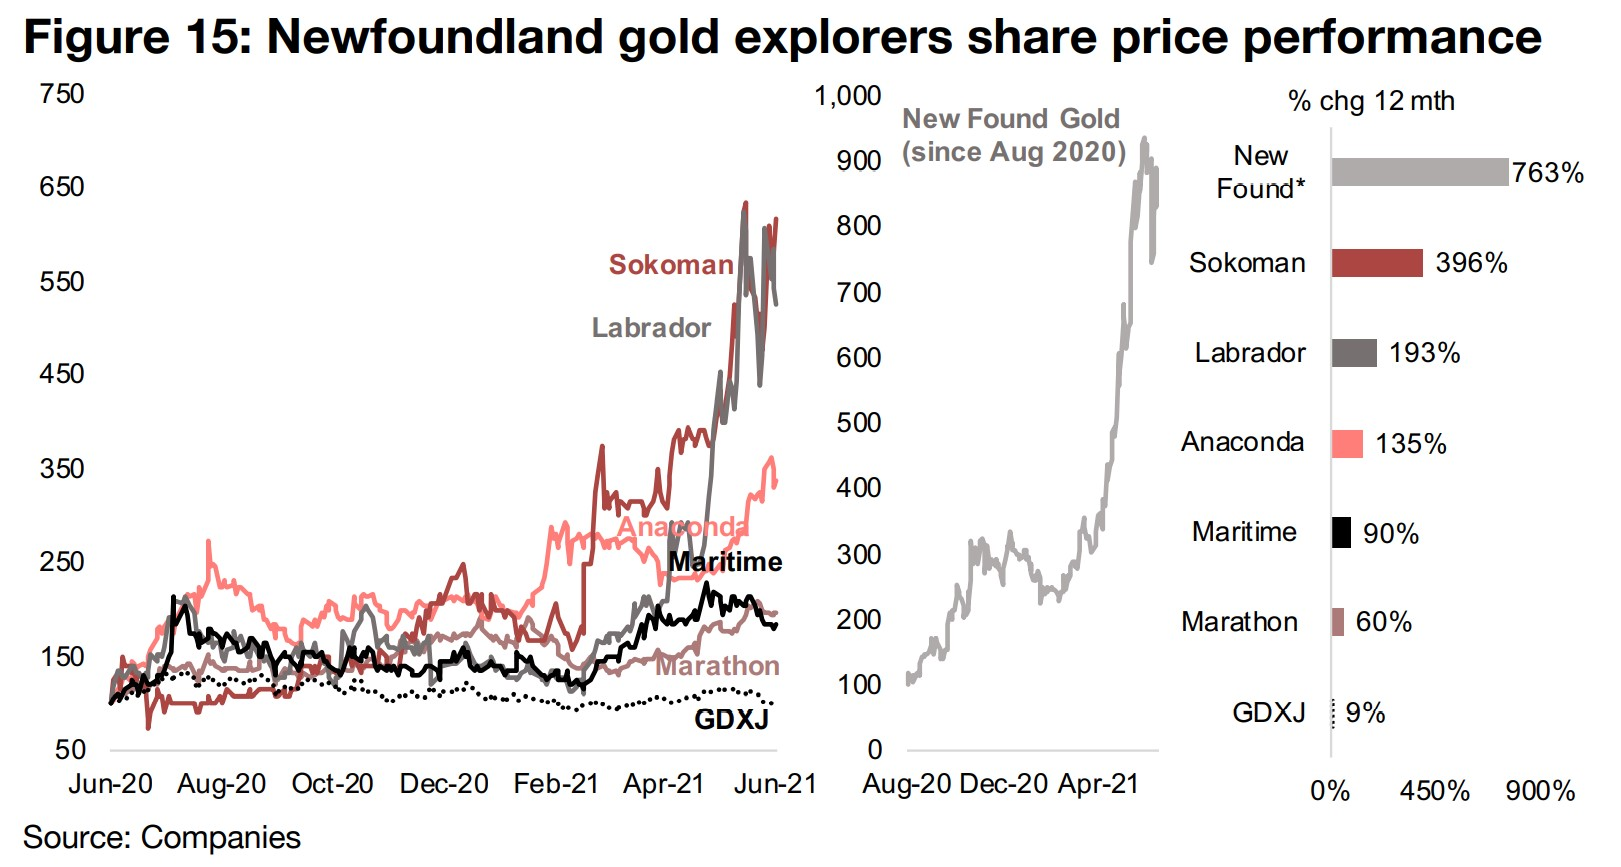 Explorers' share price gains outpace producer/developers